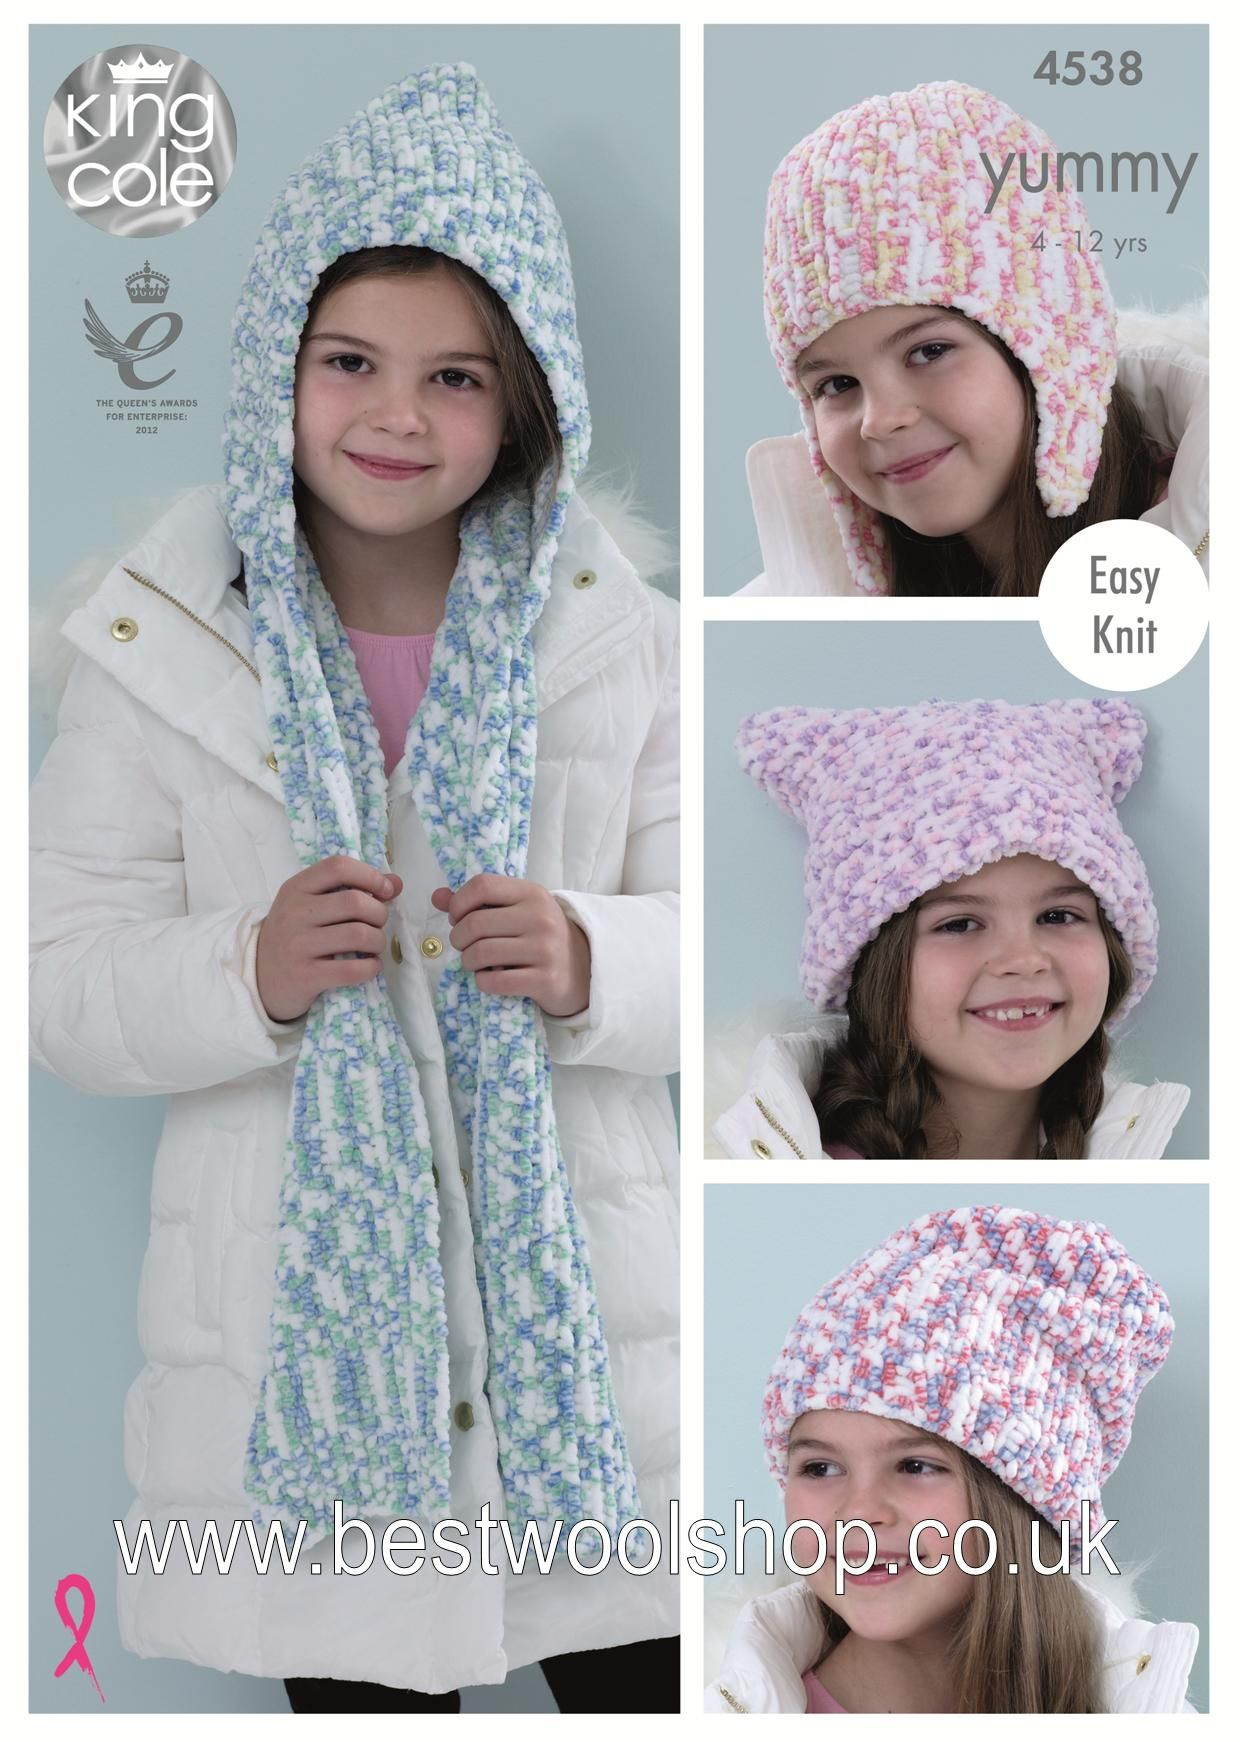 Knitted Hood Scarf Pattern 4538 King Cole Yummy Chunky Easy Knit Hooded Scarf Hat Knitting Pattern 4 Options To Fit 4 To 12 Years